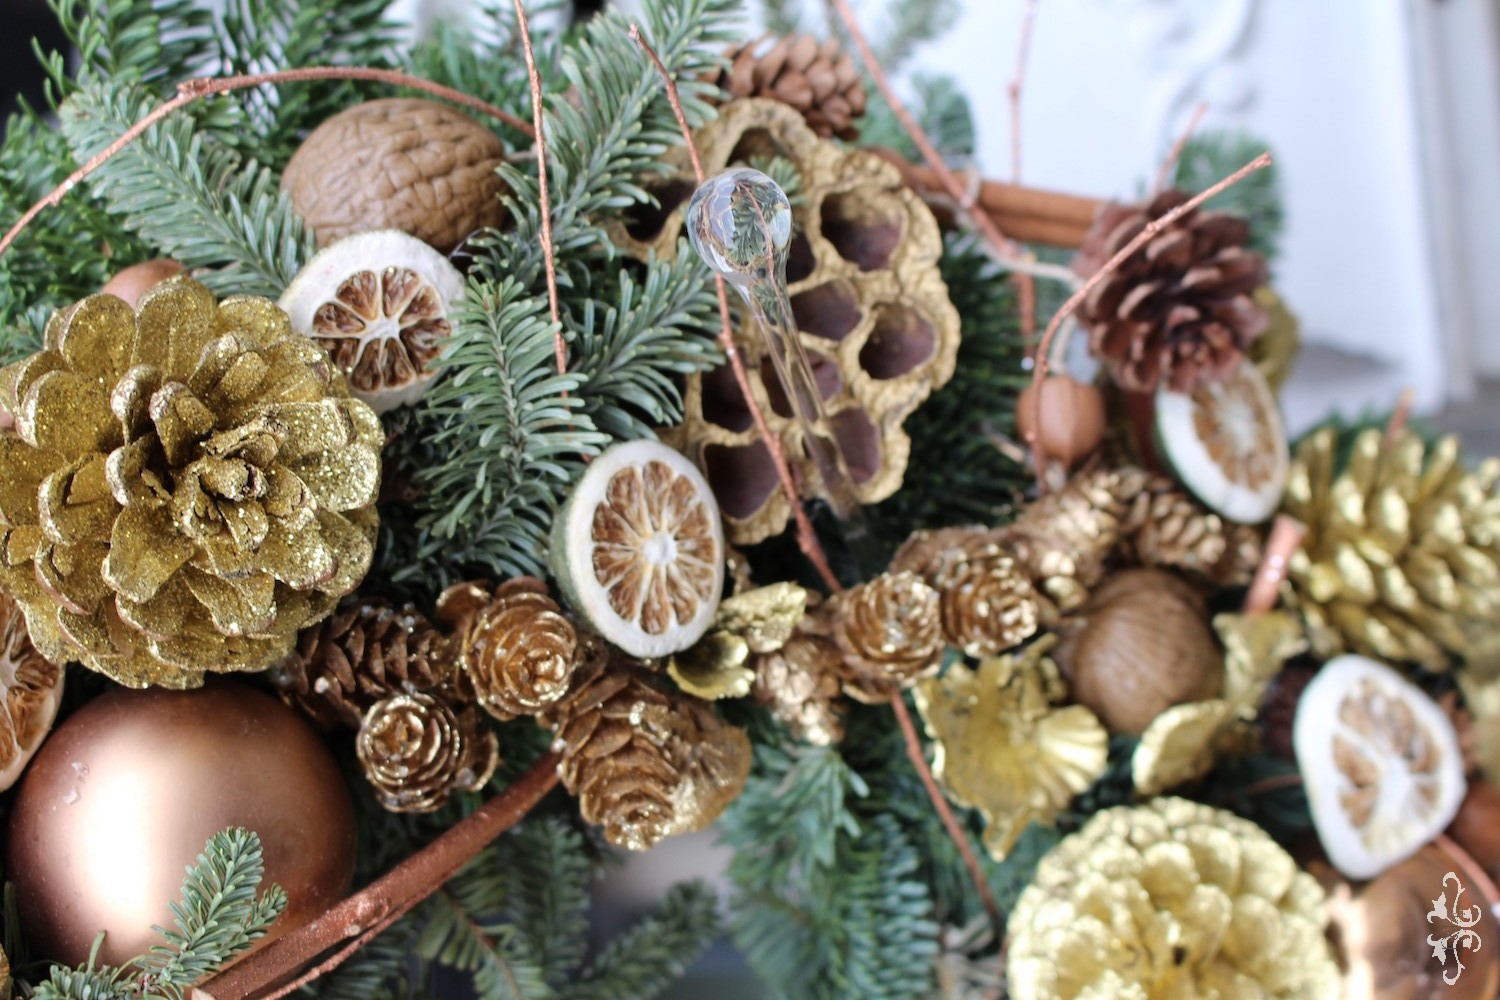 Natural and gold sprayed plant material enhanced with delicate hand-blown glass ornaments.